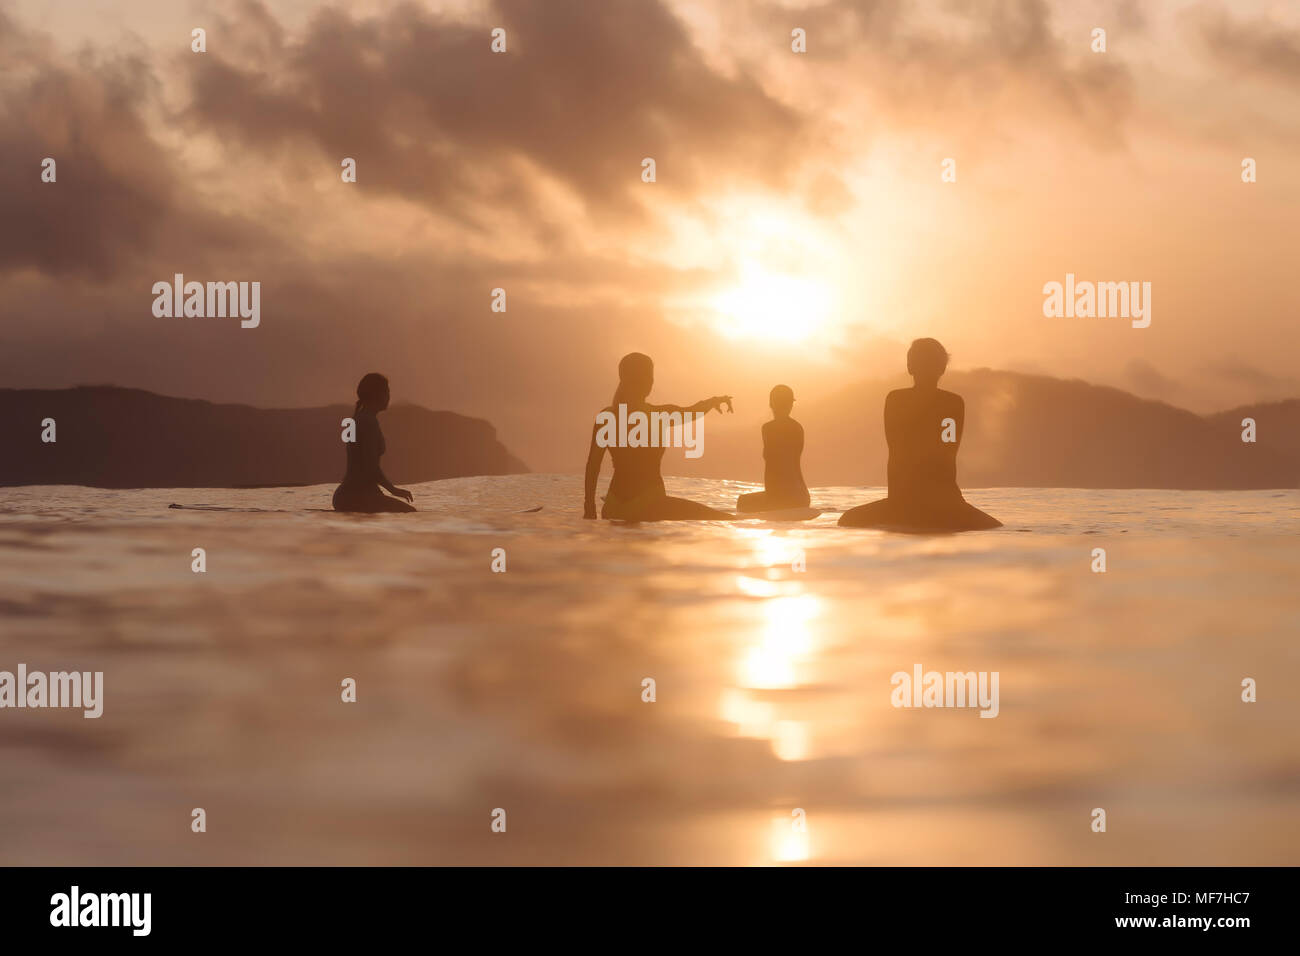 Indonesia, Lombok, group of surfers sitting on surfboards at sunset - Stock Image